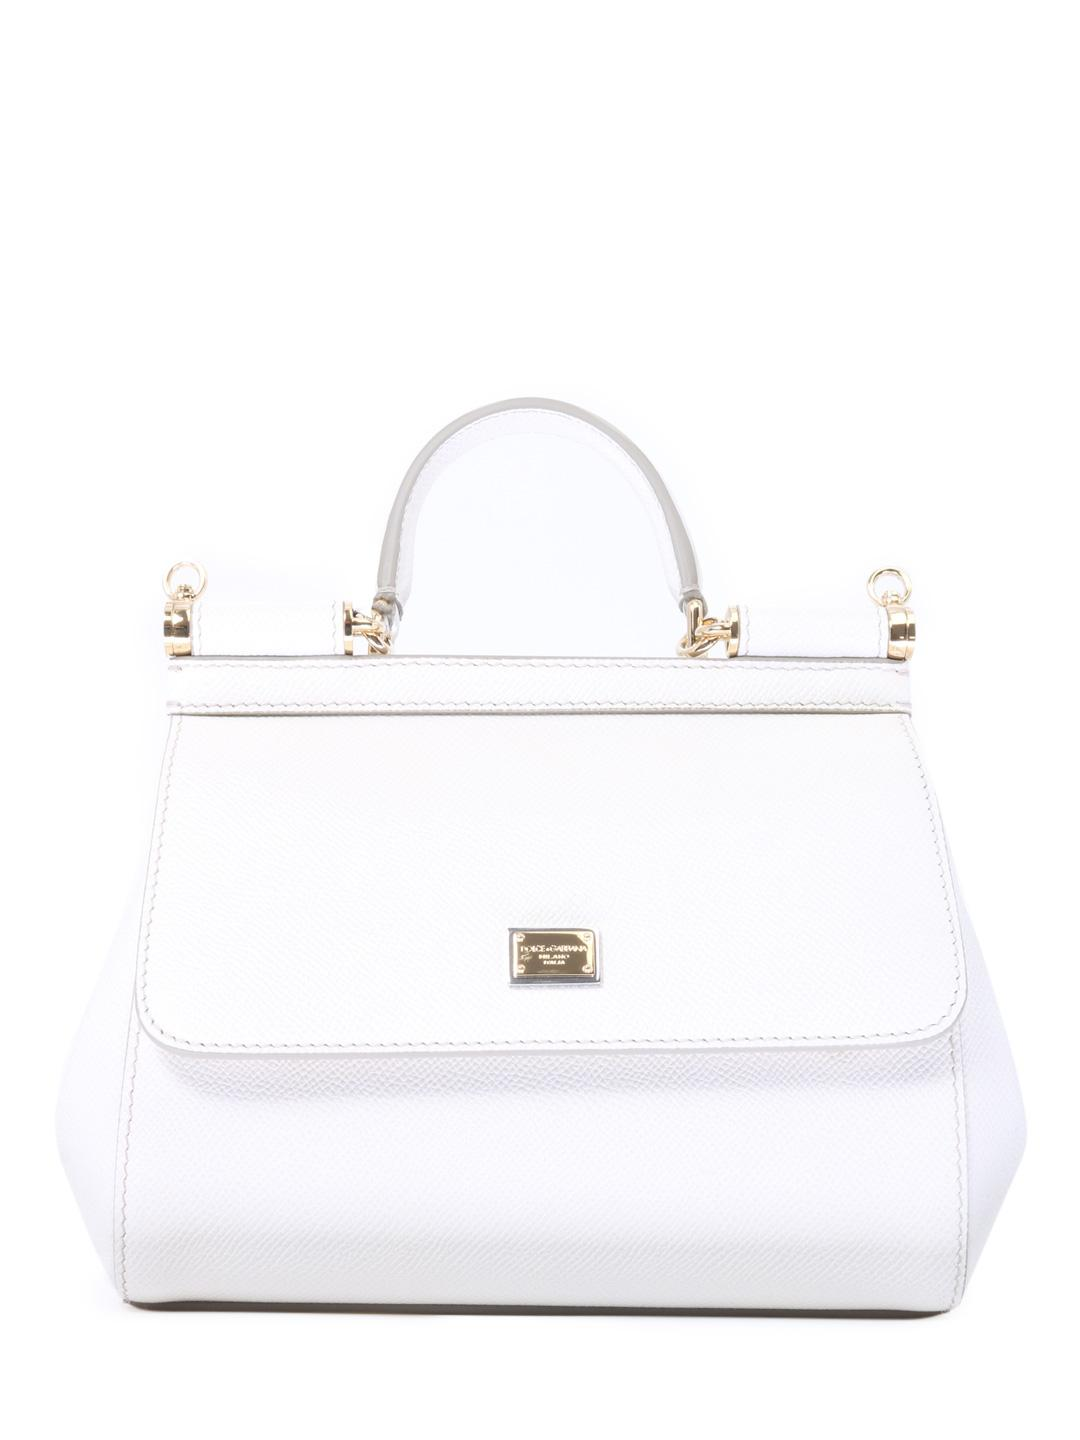 a0c966f367 Lyst - Dolce   Gabbana Sicily Small Bag White in White